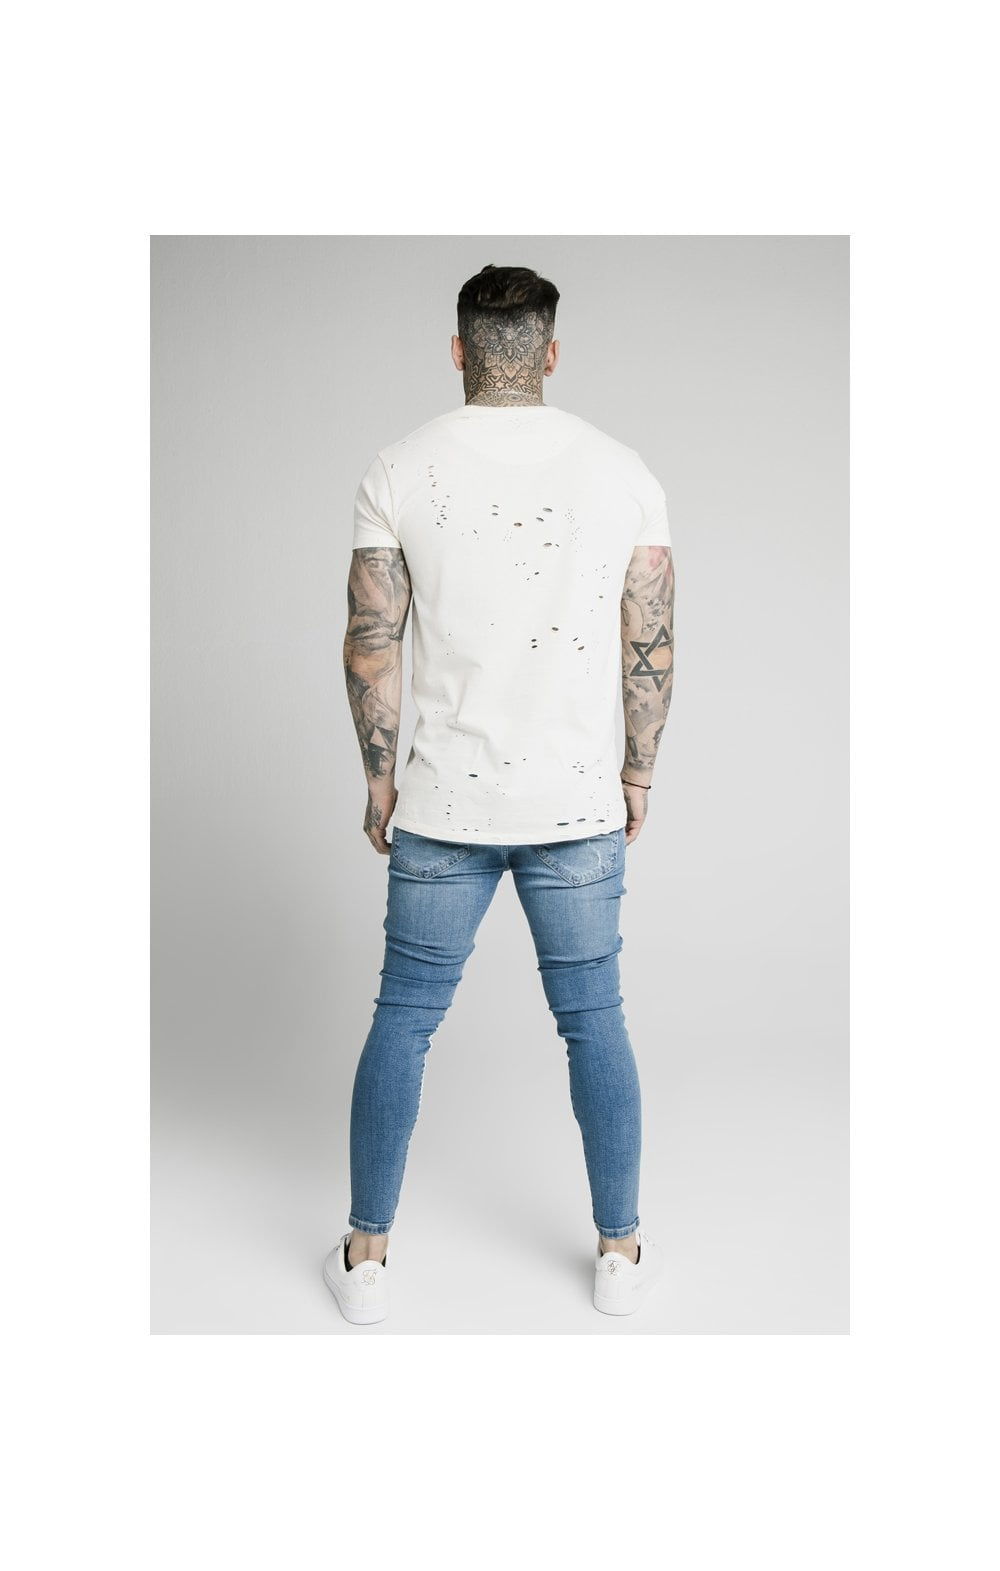 SikSilk Skinny Distressed Paint Stripe Denims - Midstone & White (5)